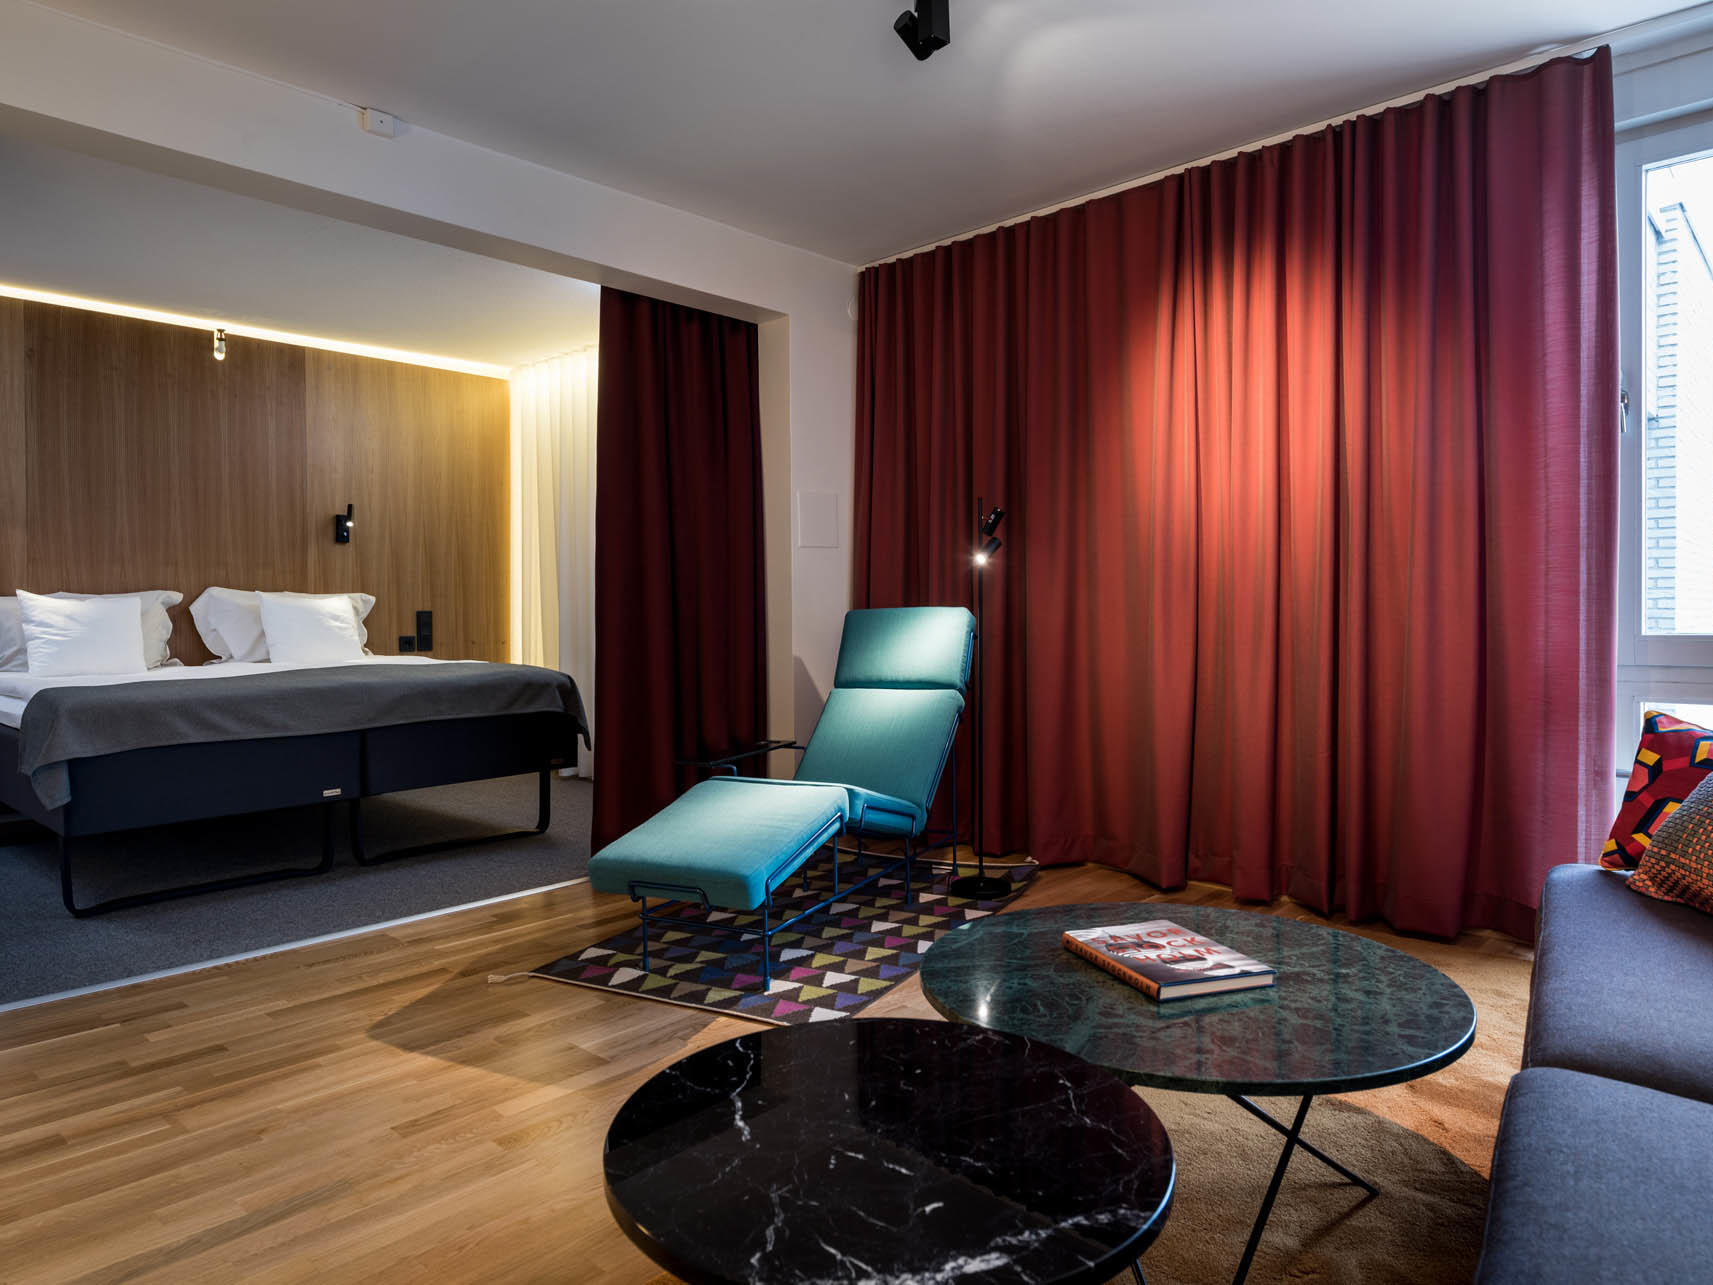 Suite at Hotel Birger Jarl in Stockholm, Sweden